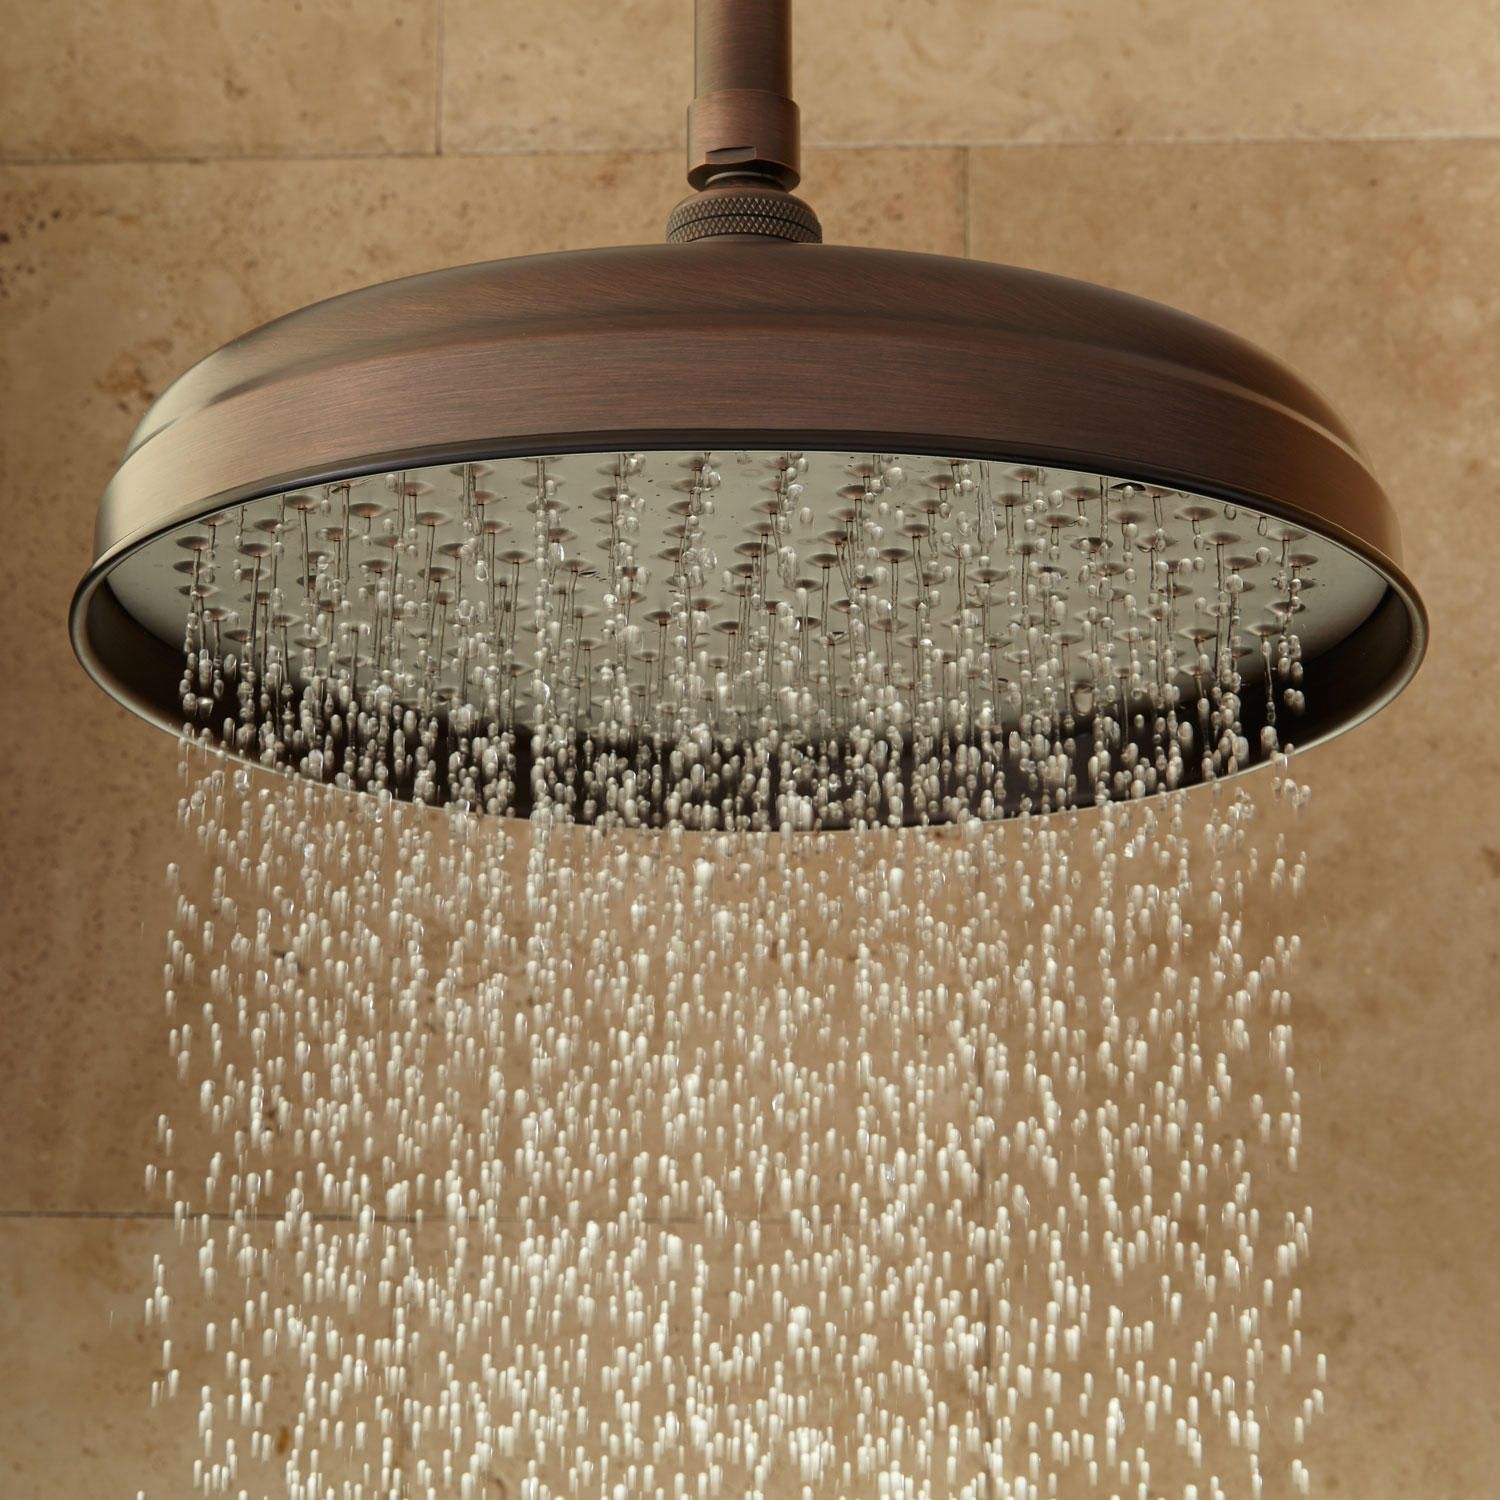 8 Lambert Rainfall Shower Head In 6 Ceiling Arm In Oil Rubbed